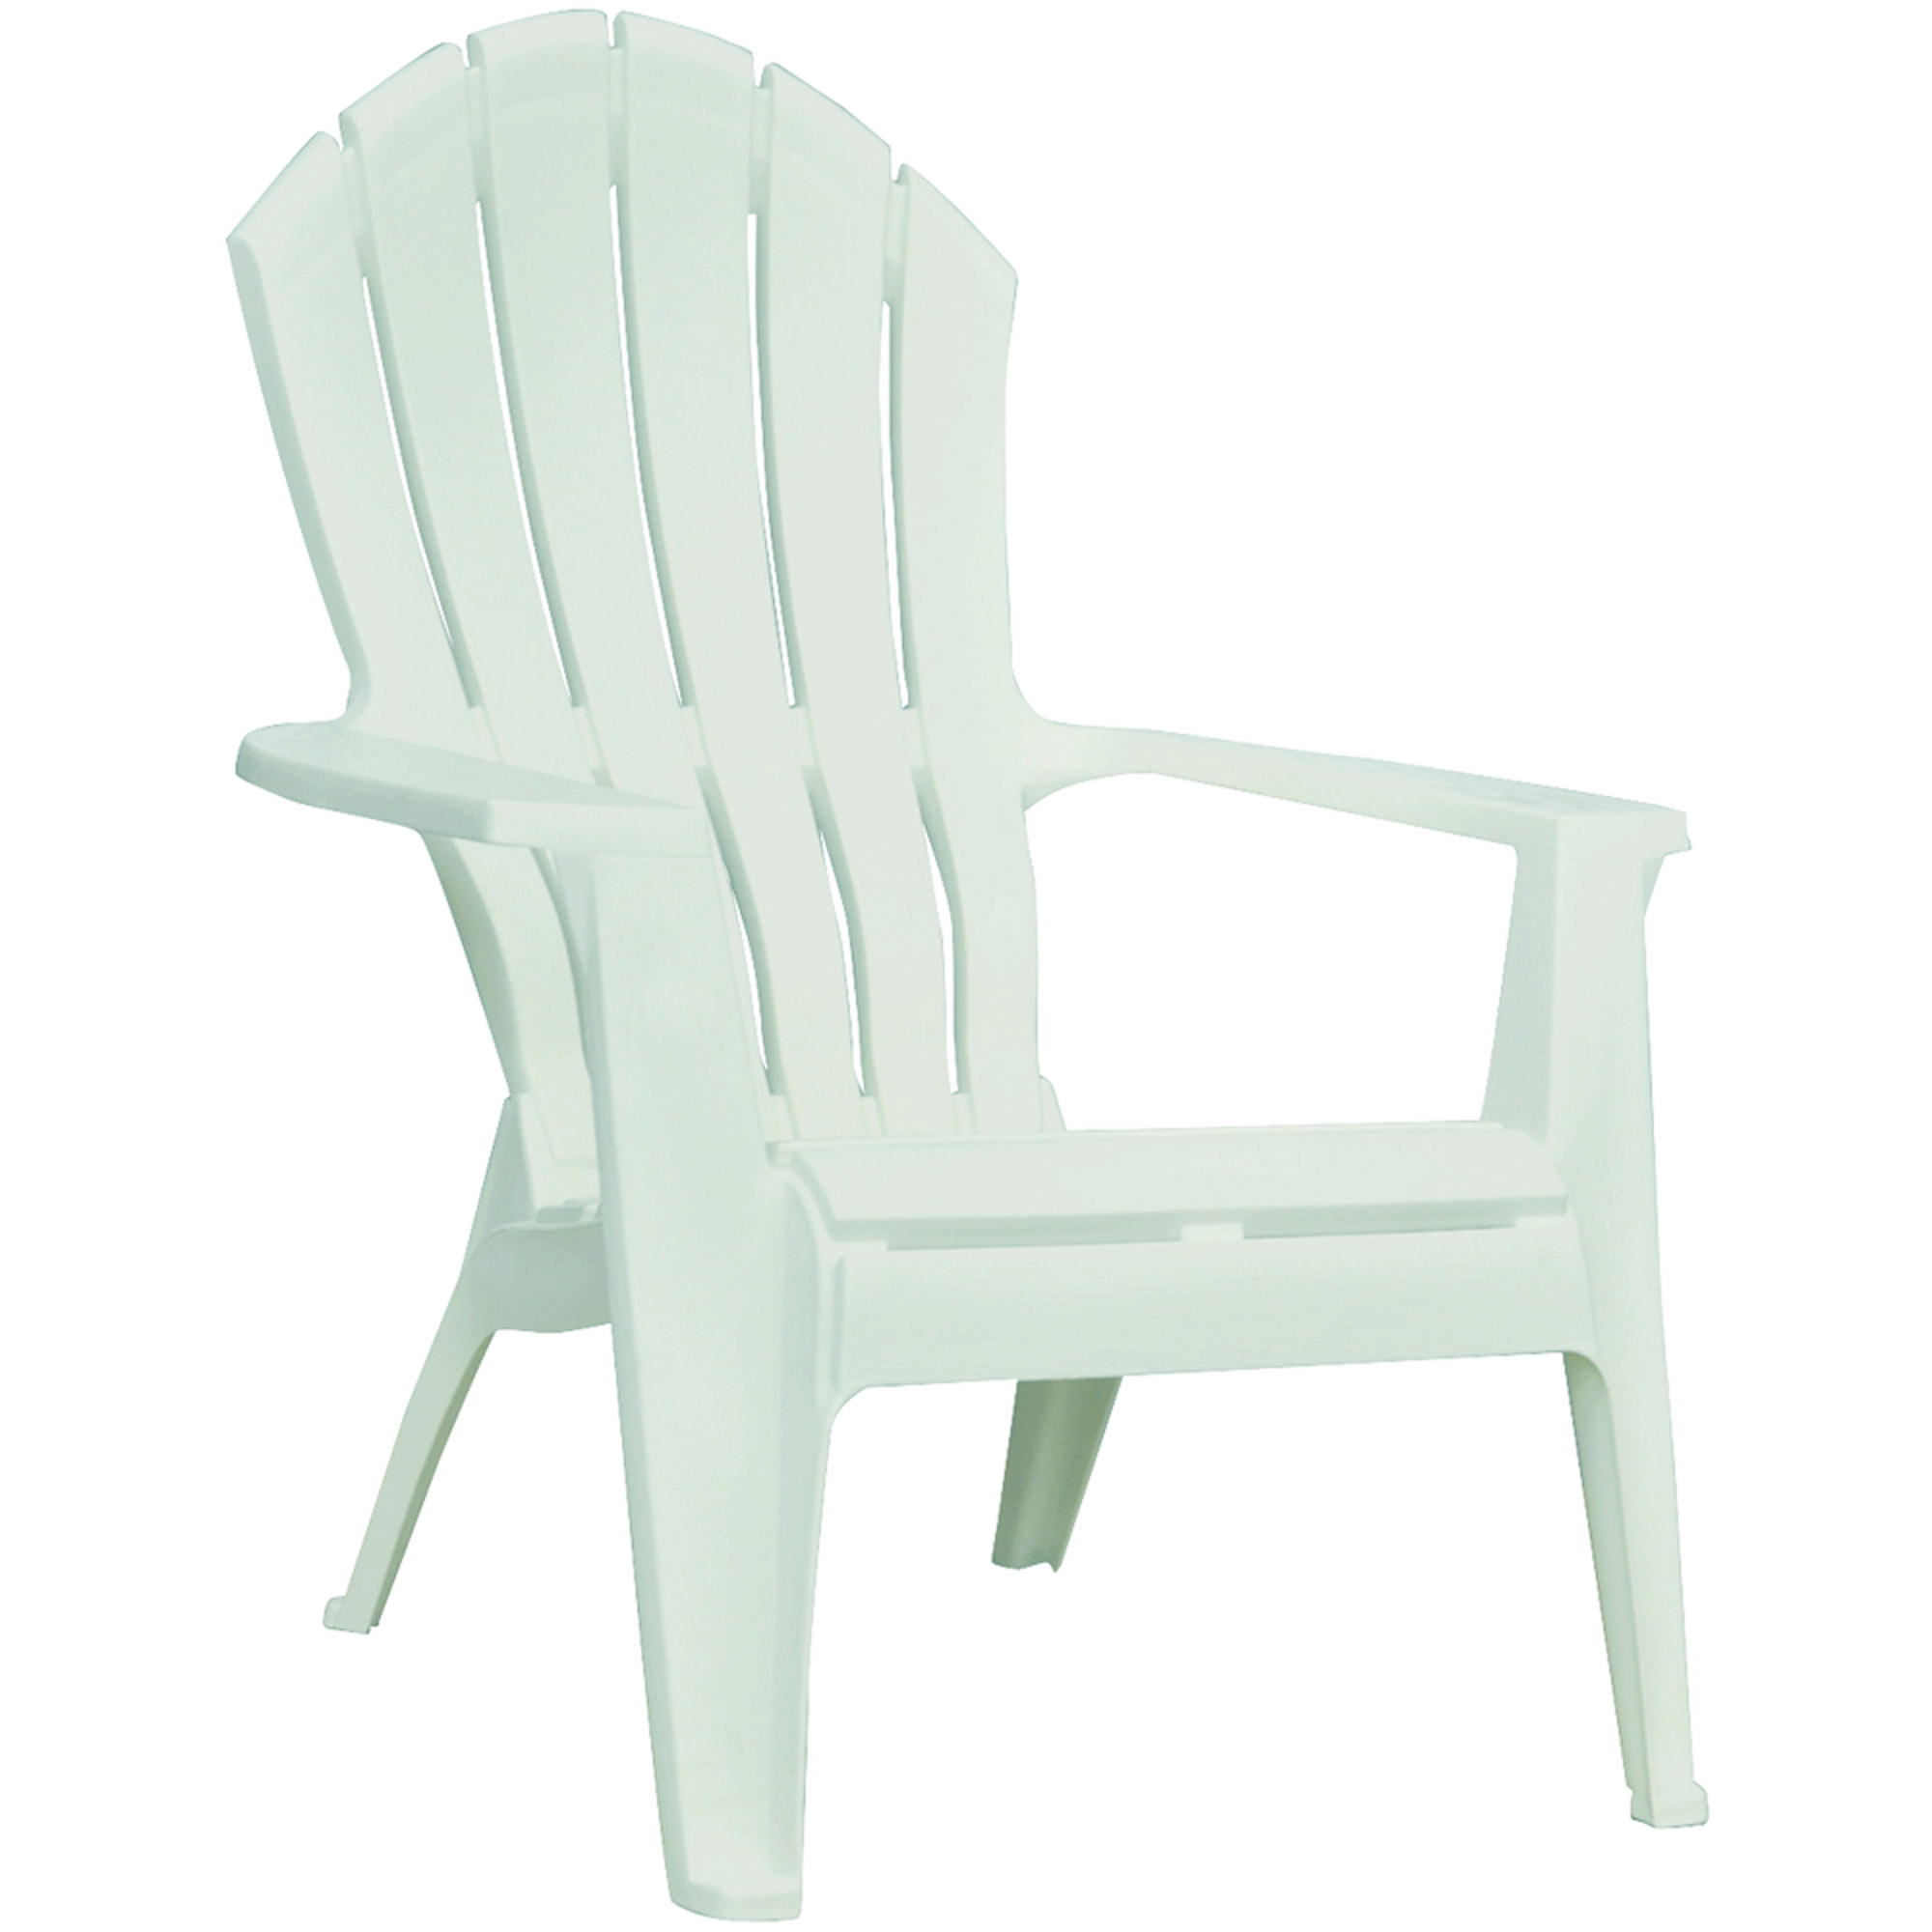 Adams USA Adams Realcomfort Ergonomic Adirondack Chair 8371-48-3700  sc 1 st  Nextag & Adams USA Adams Realcomfort Ergonomic Adirondack Chair 8371-48-3700 ...